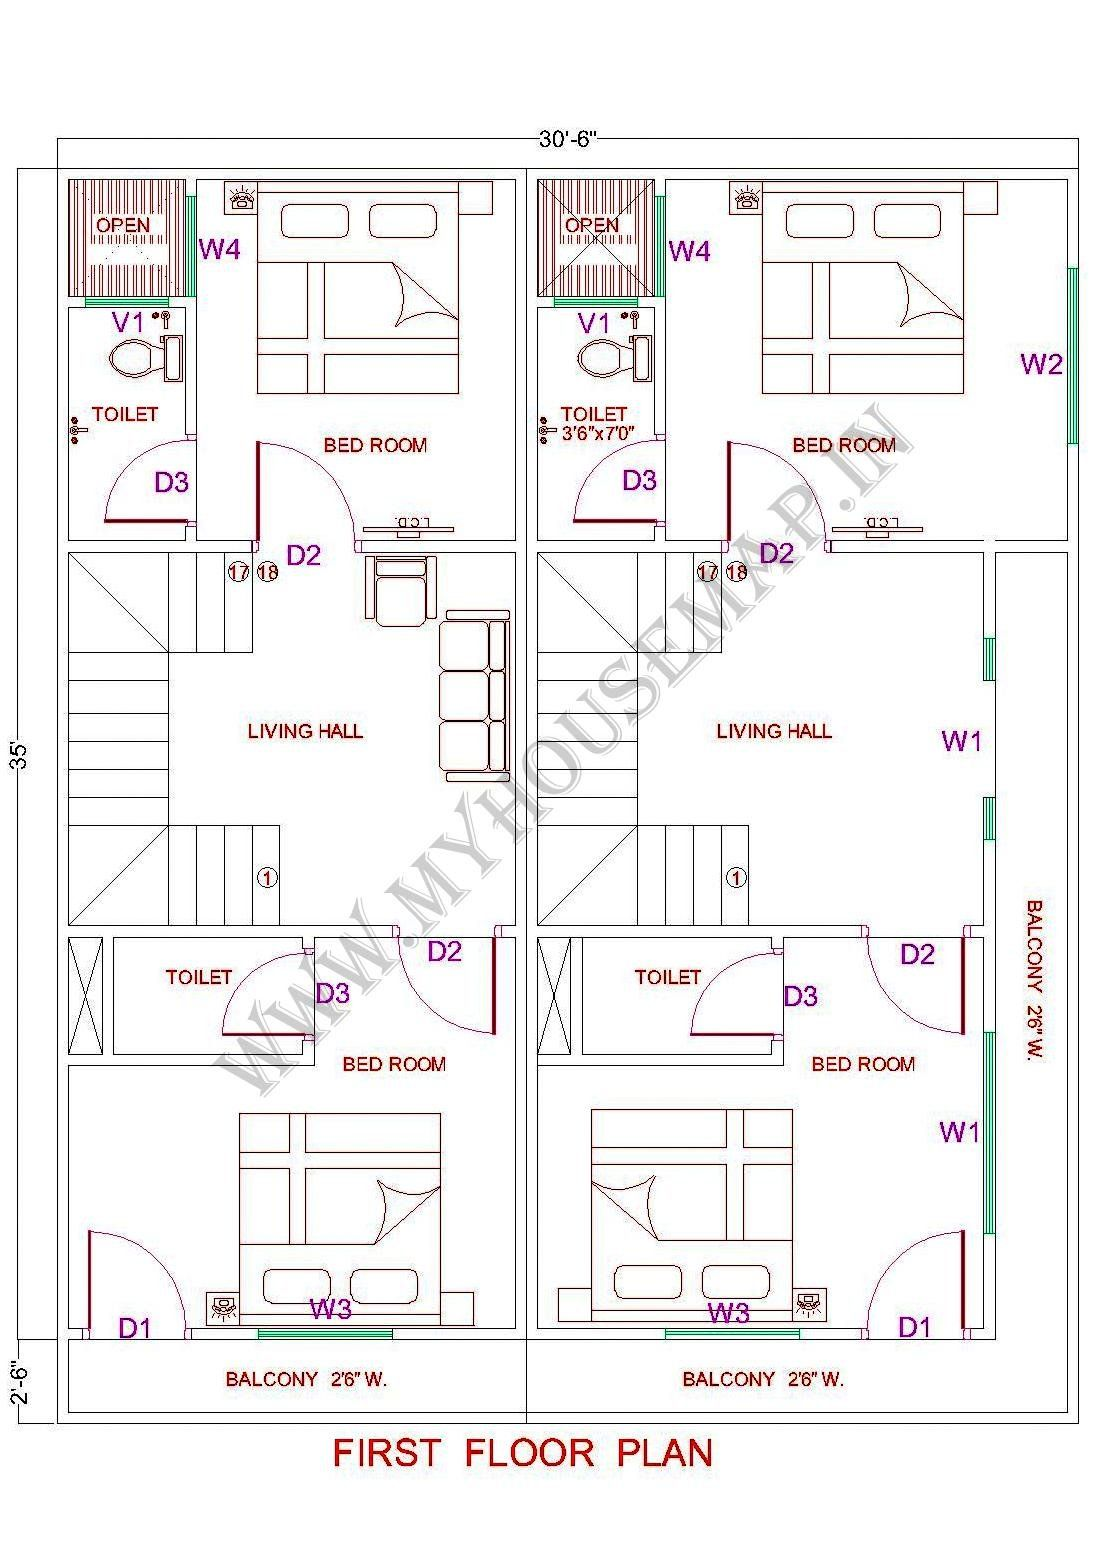 House Map Front Elevation Design House Map Building Design House Designs House Plans House Map House Plans Home Map Design